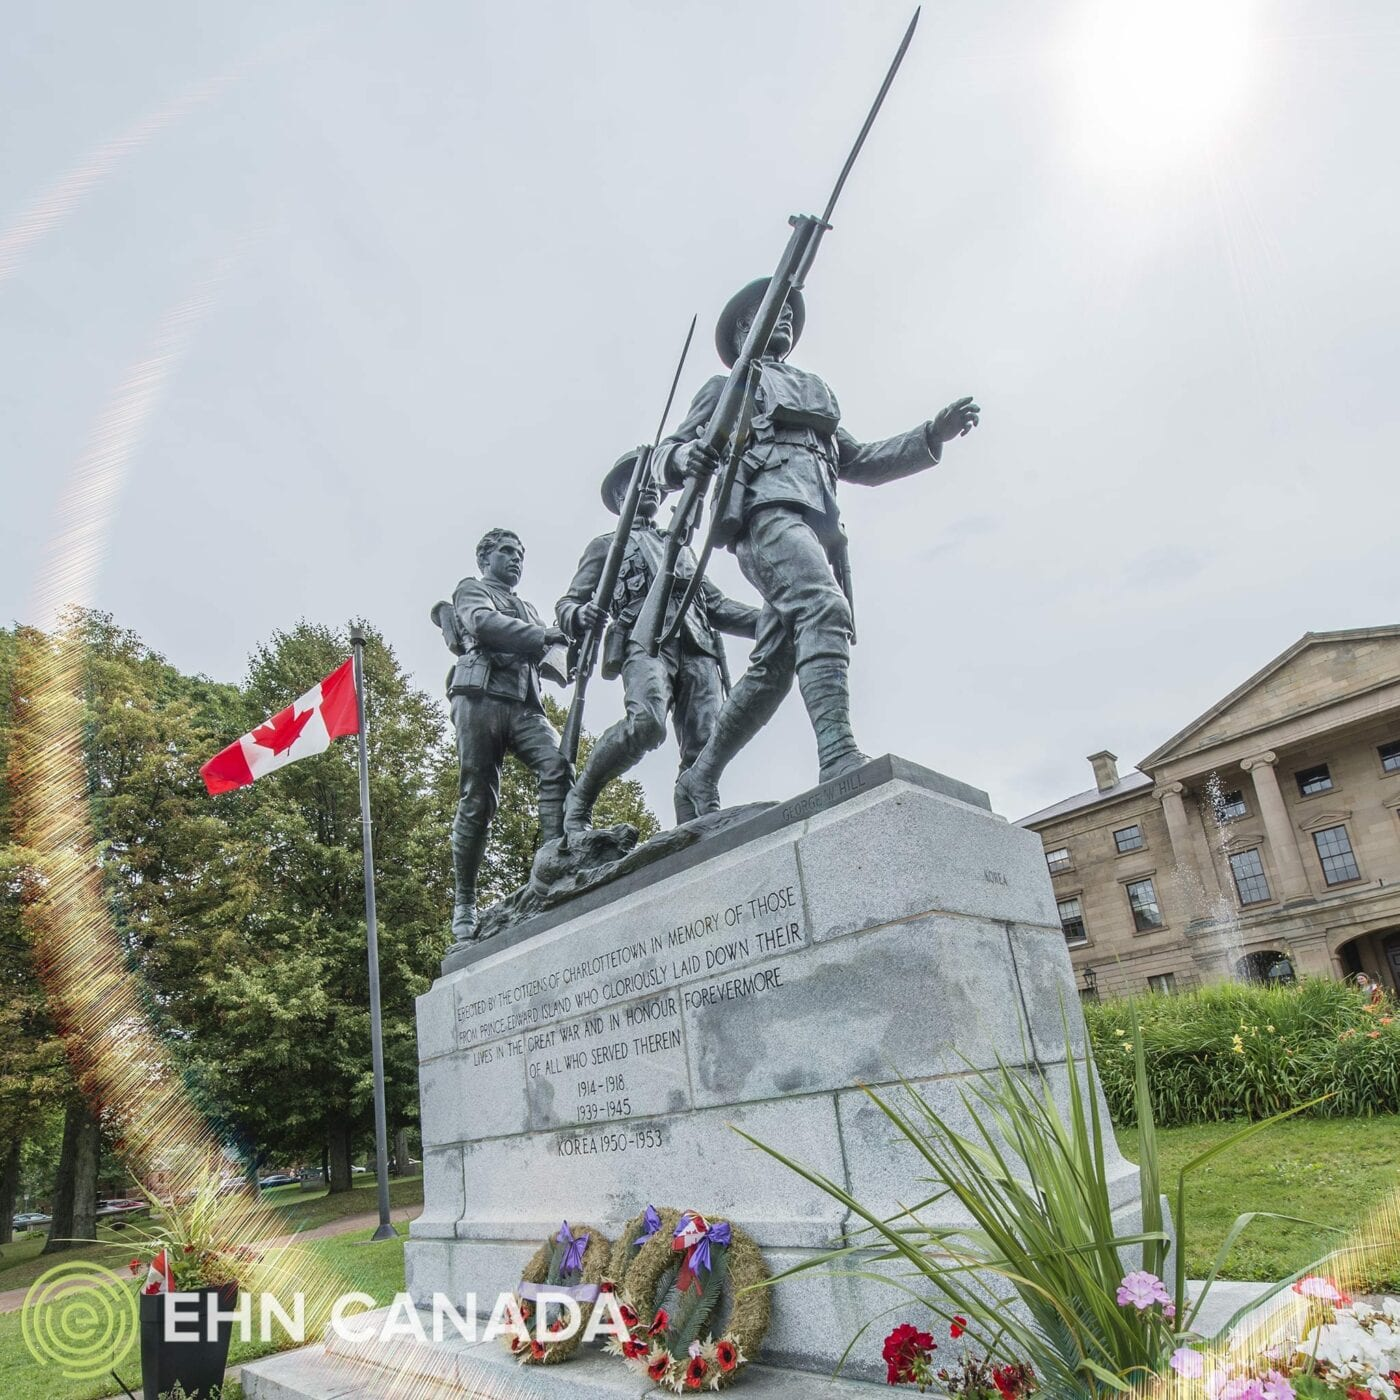 Remembrance Day and Alcoholics Anonymous—Connections Between the Military and Recovery